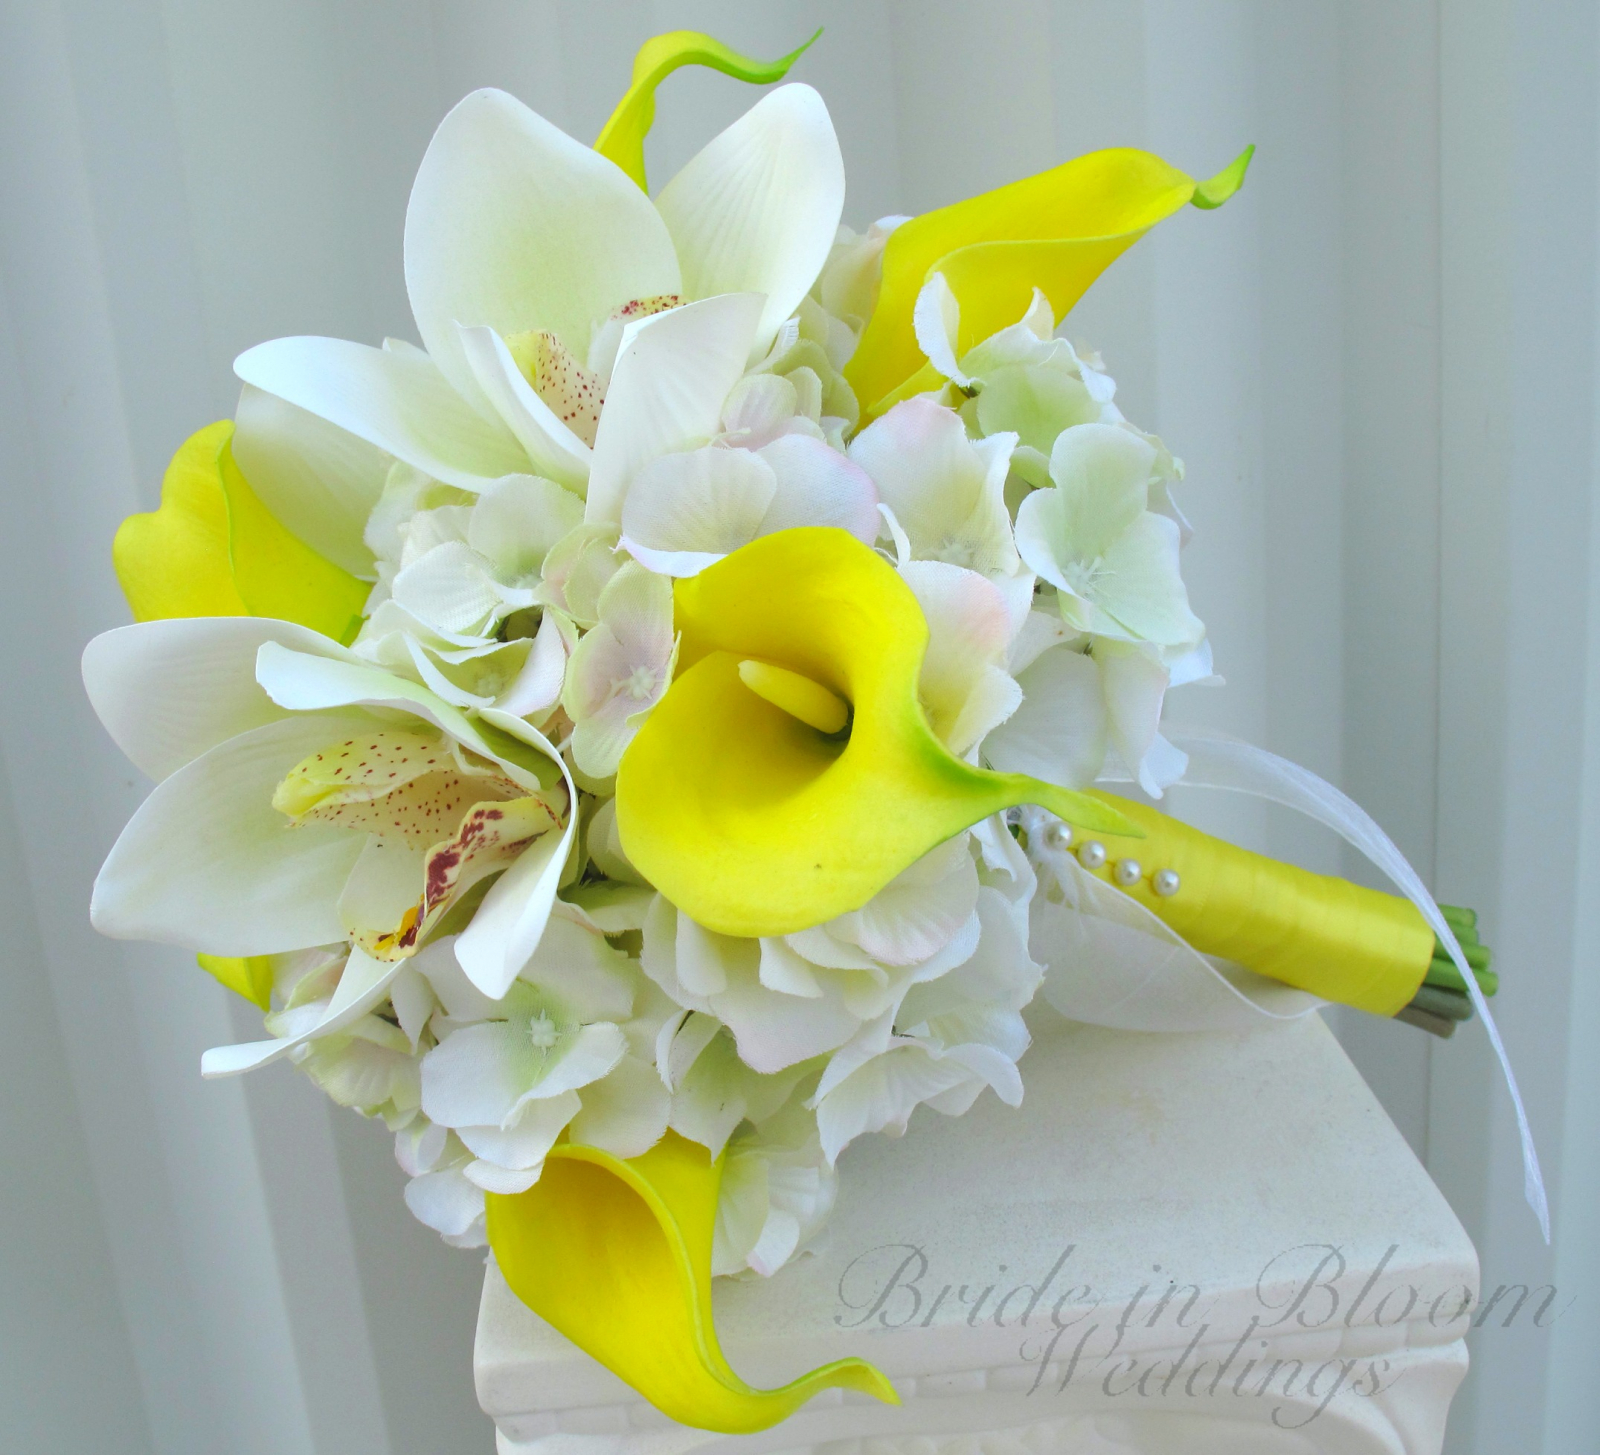 Yellow Calla Lily Orchid Wedding Bouquet Bride In Bloom